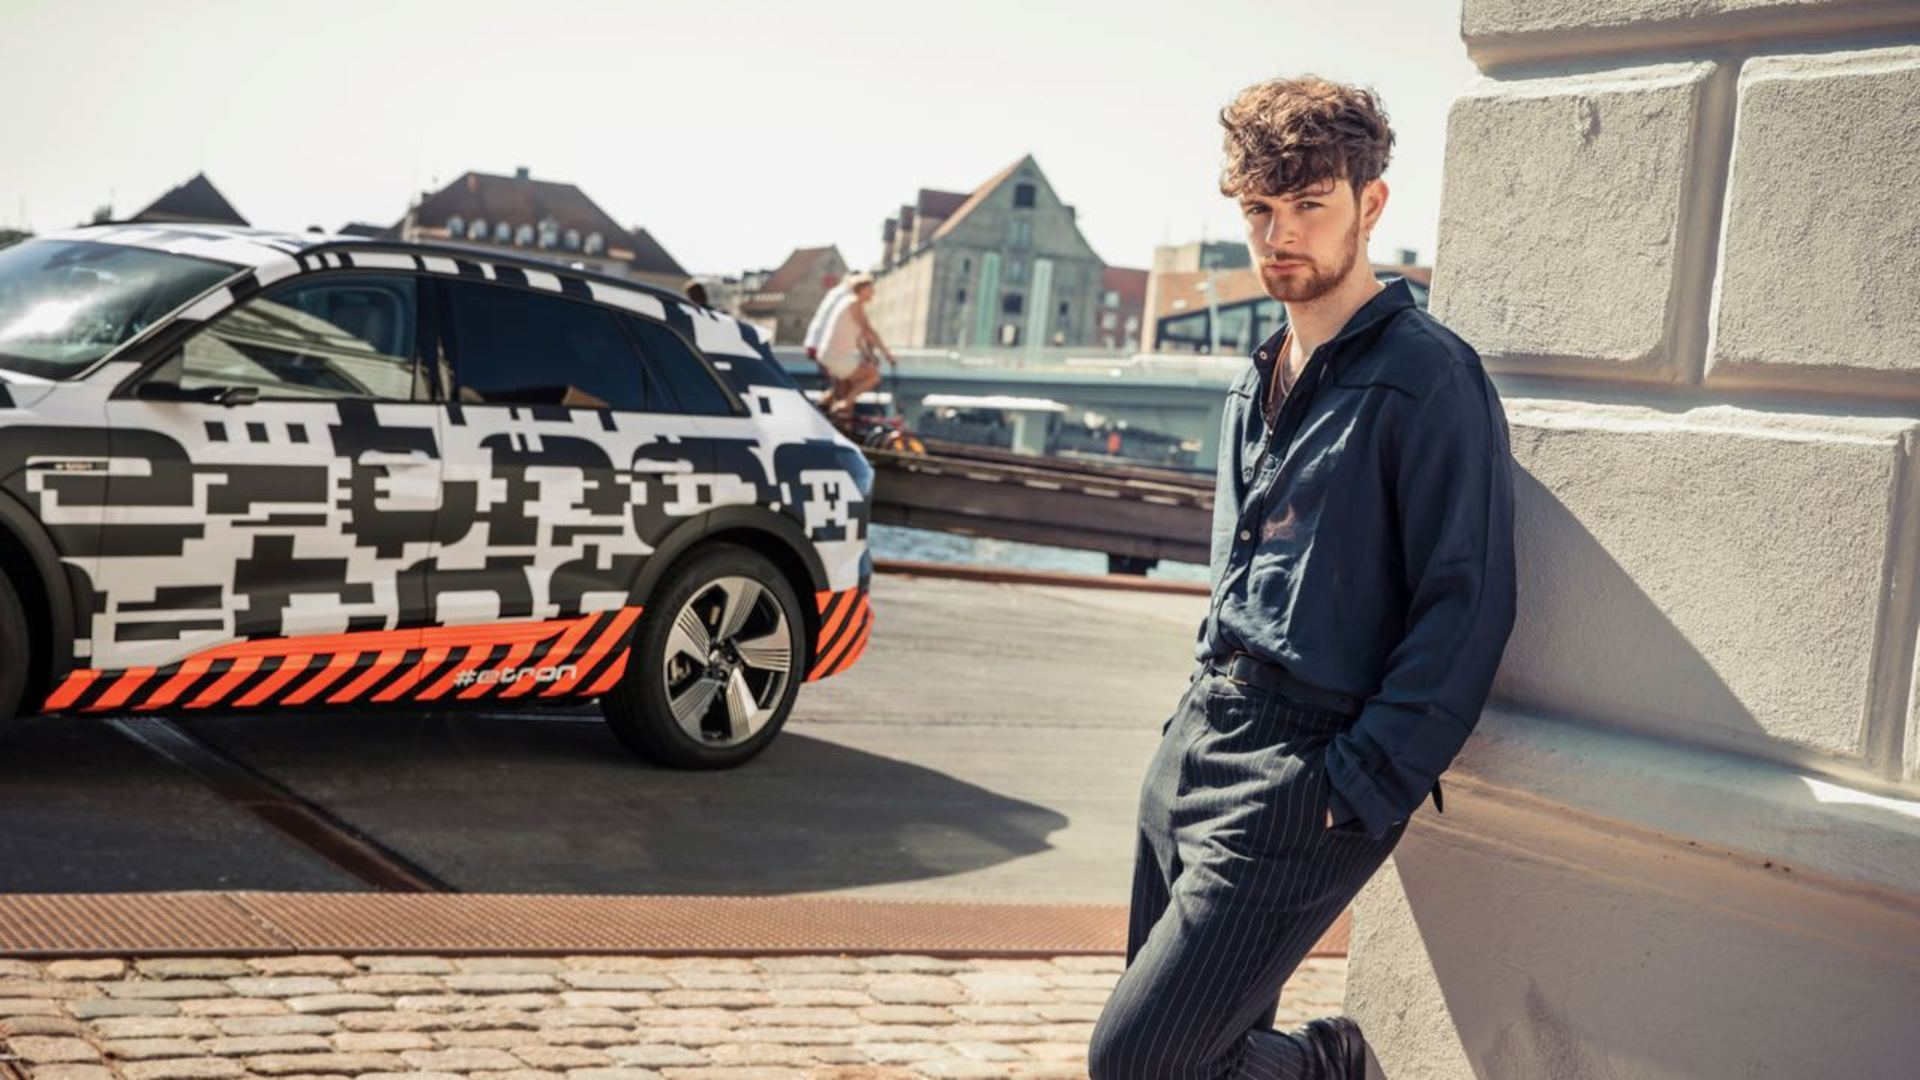 The Audi e-tron prototype on stage with singer Tom Grennan